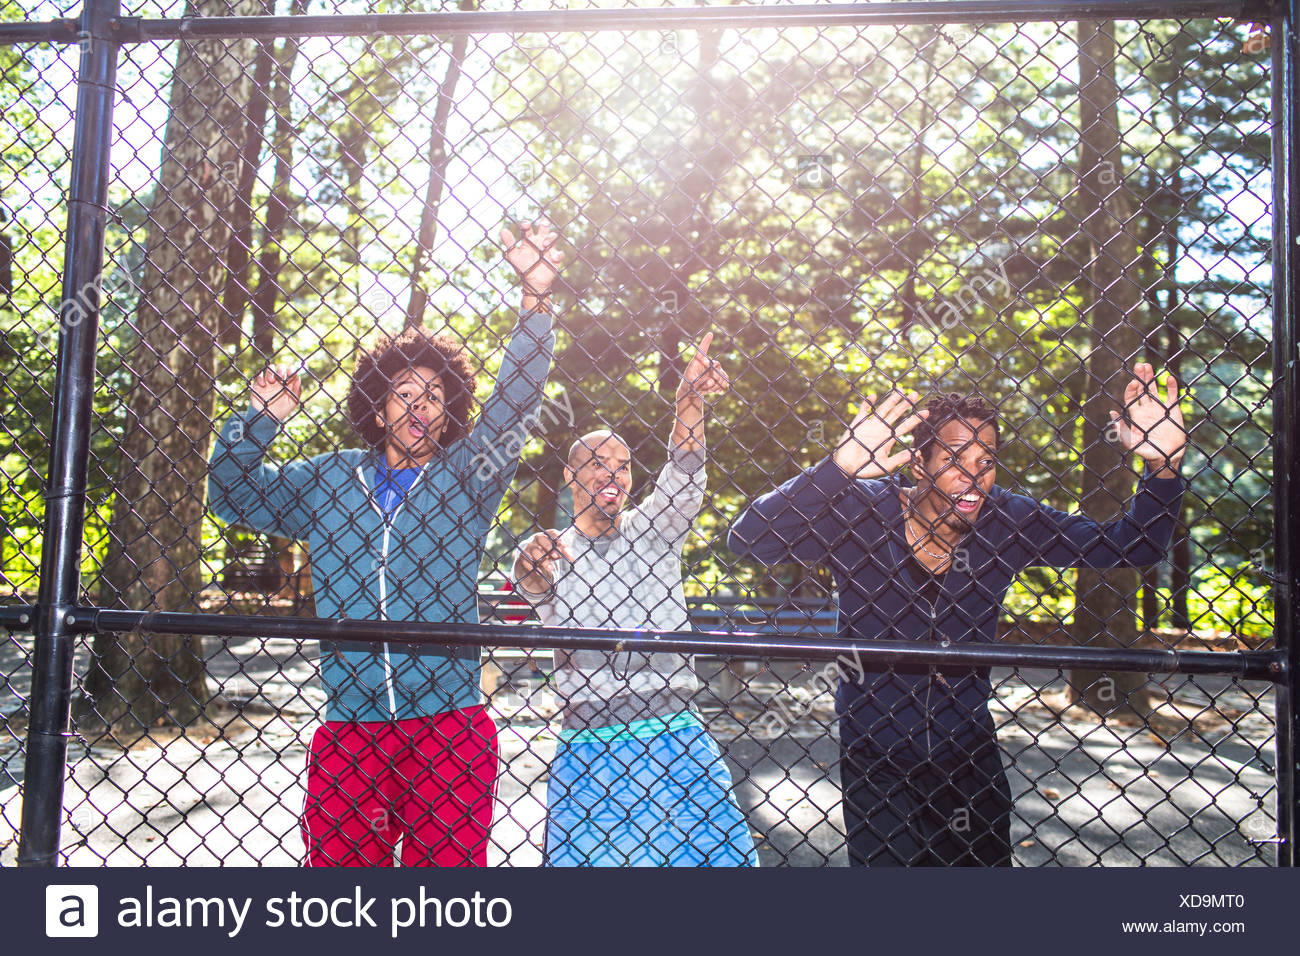 Young men by wire fence in park - Stock Image